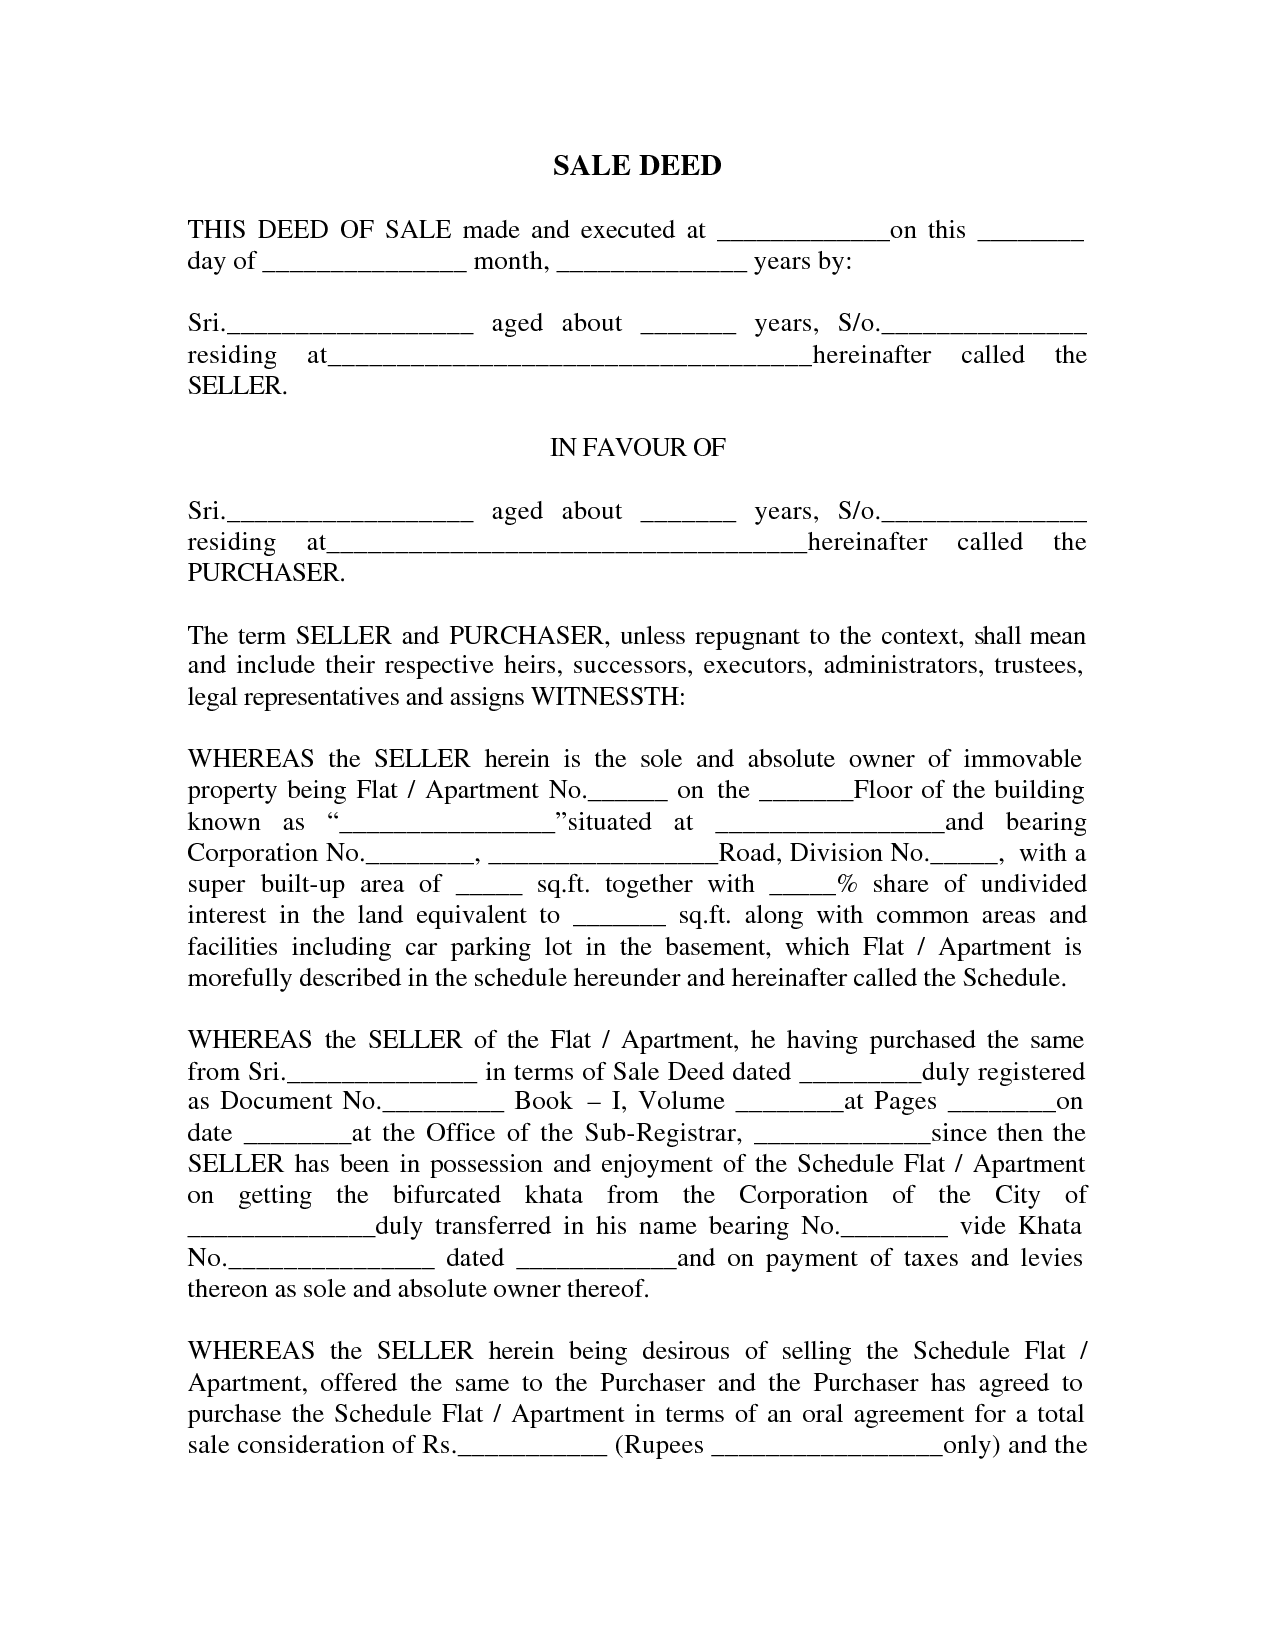 Sale Deed Format Images